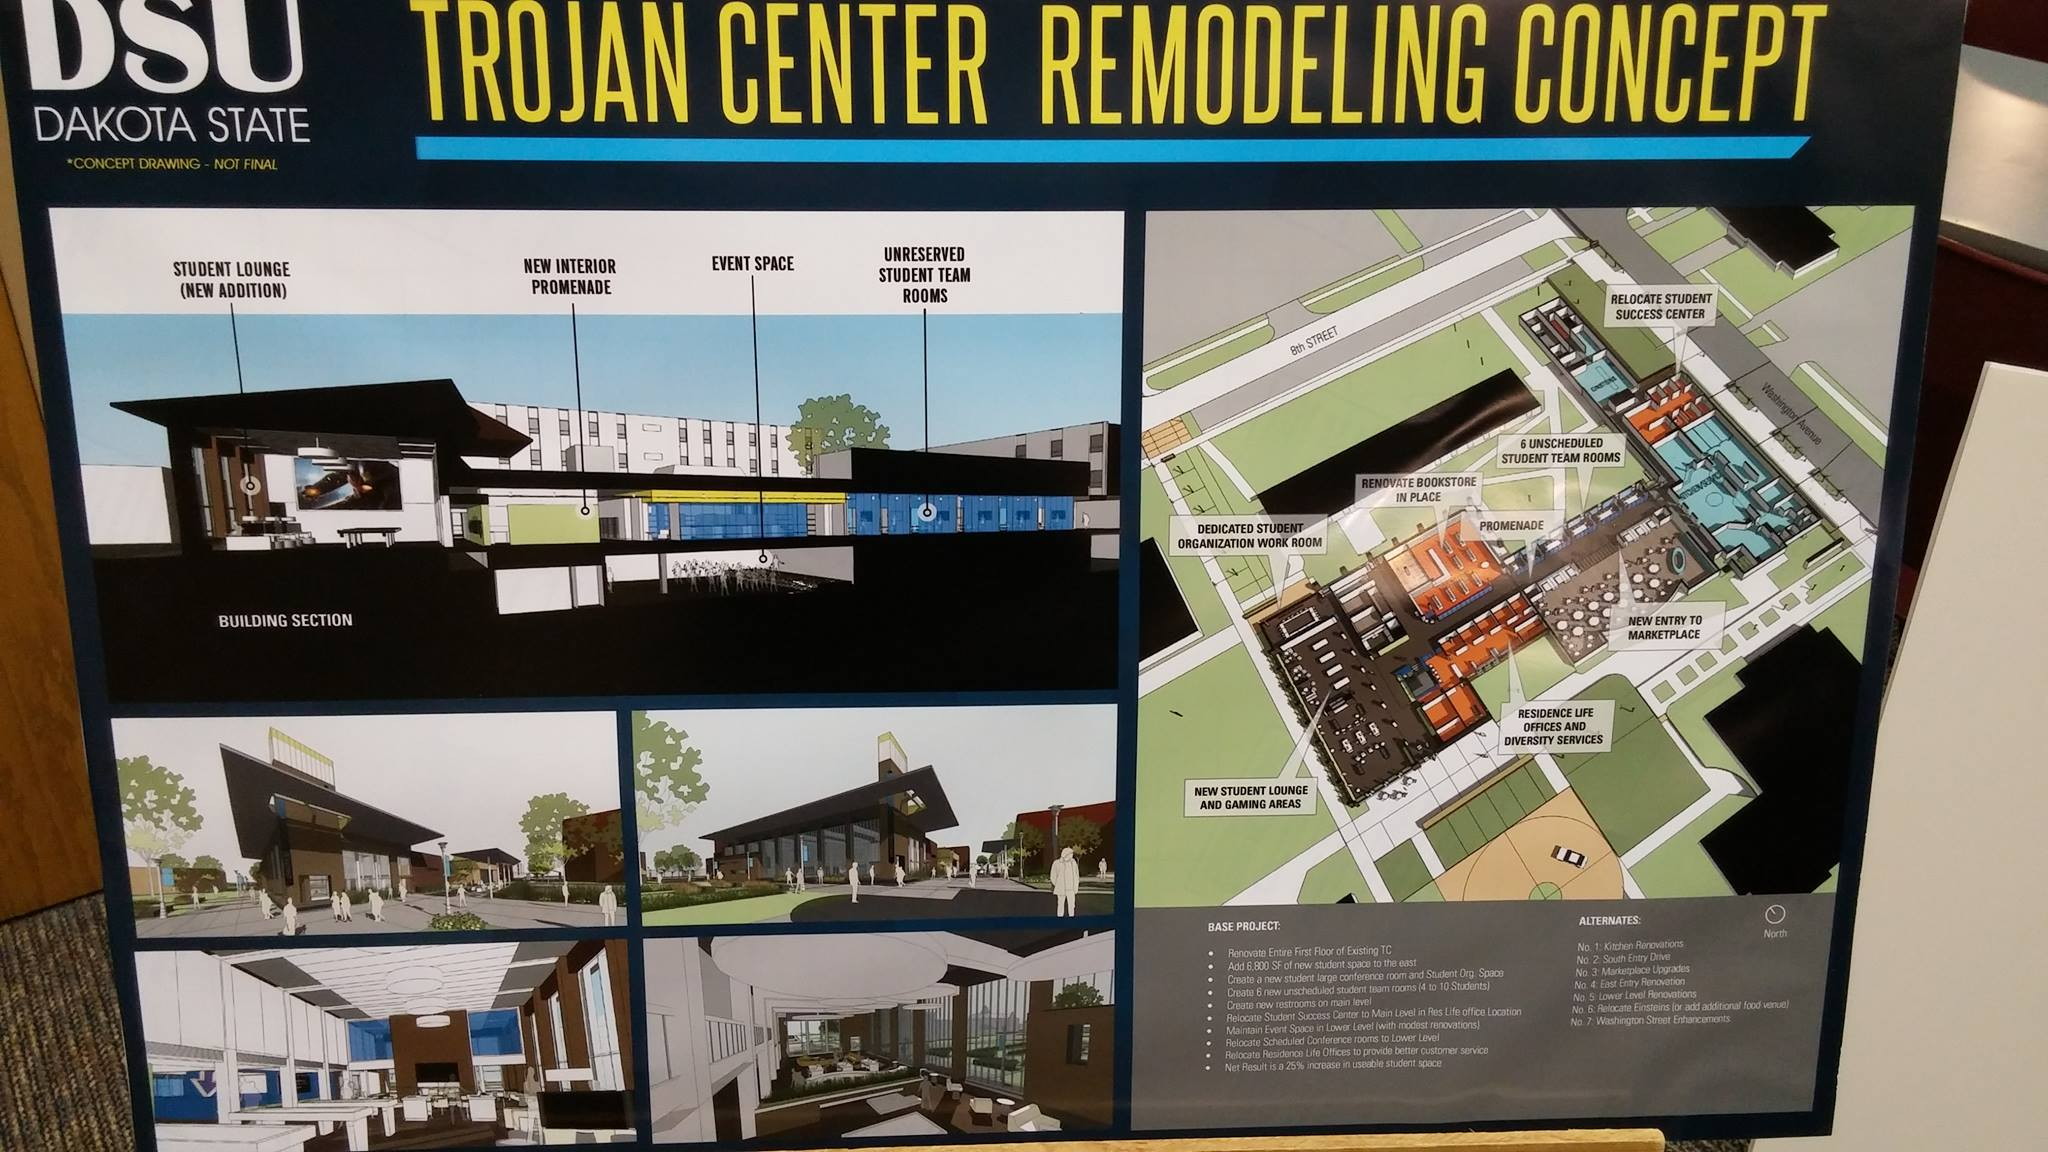 Trojan Center Remodeling Concept revealed to public